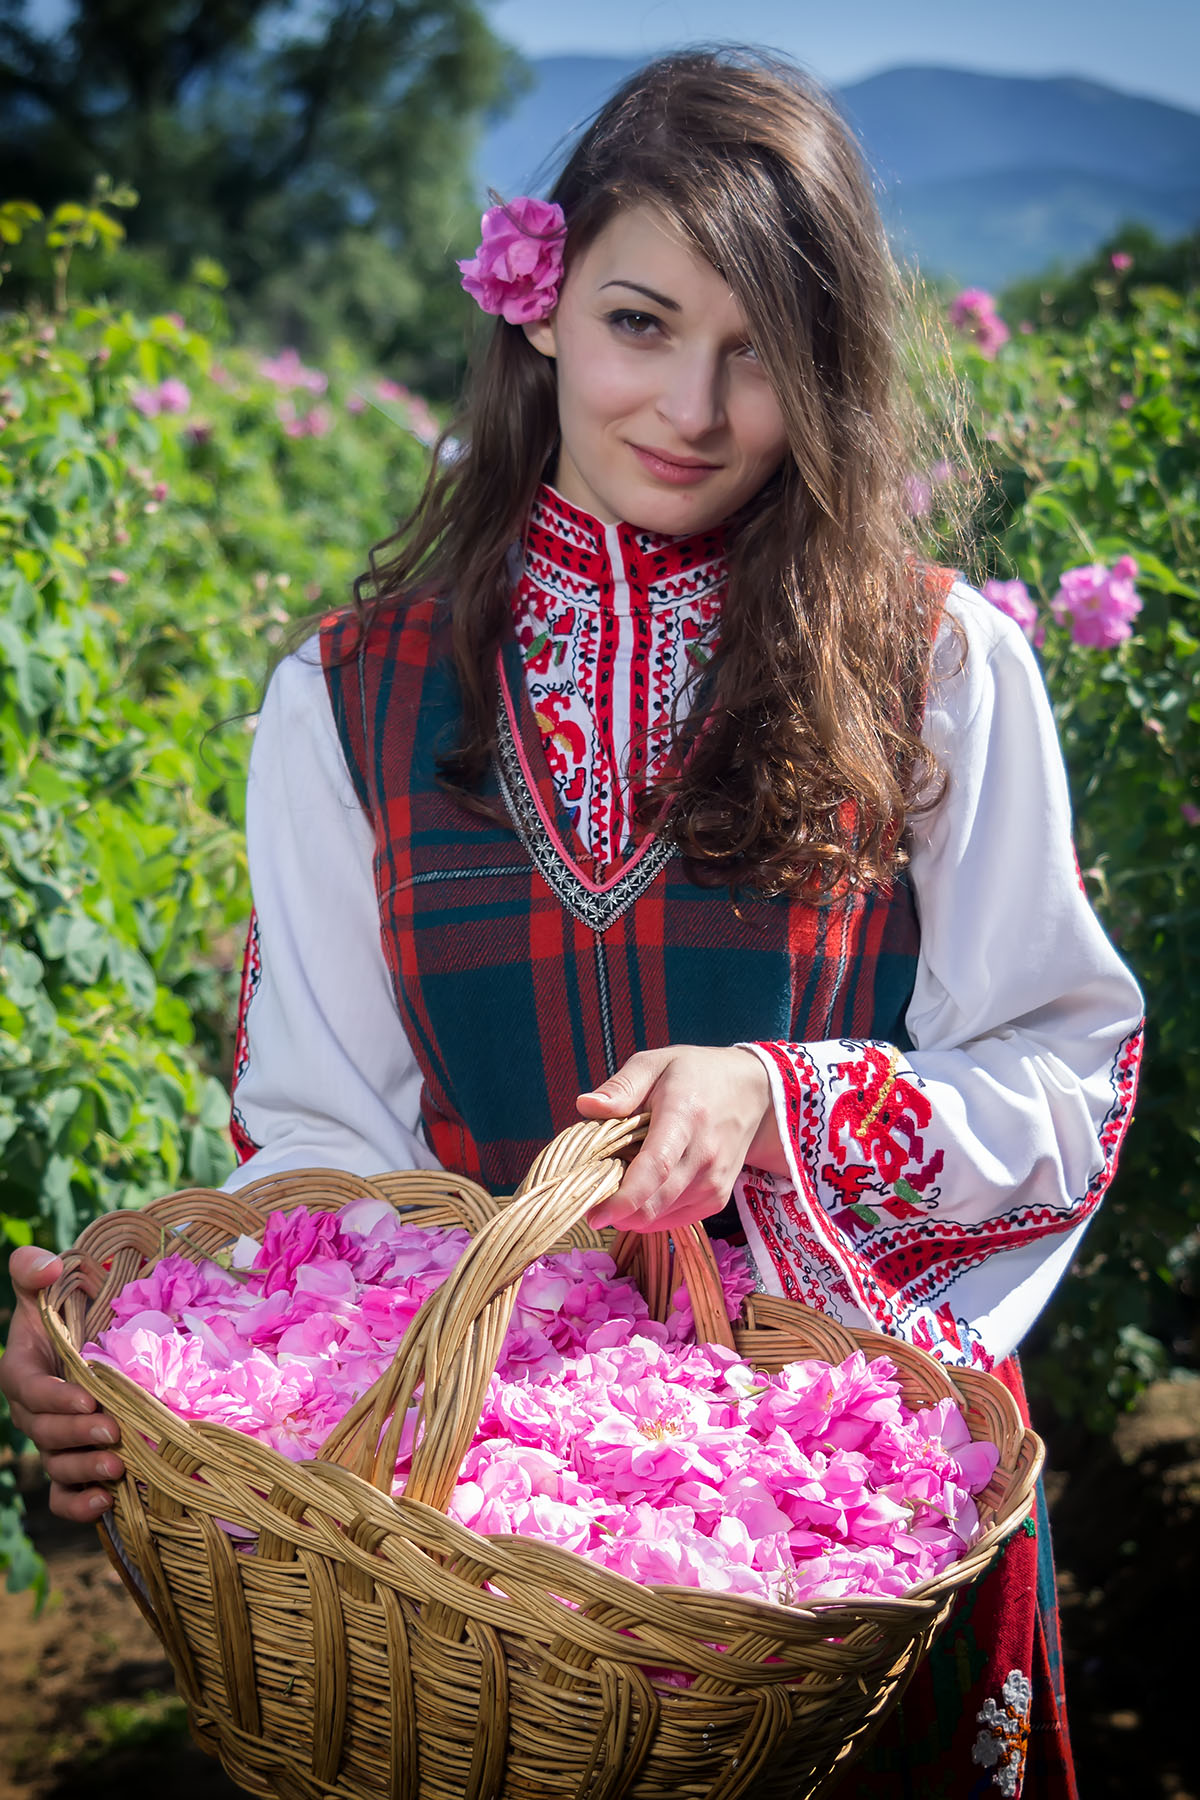 A beautiful Bulgarian girl